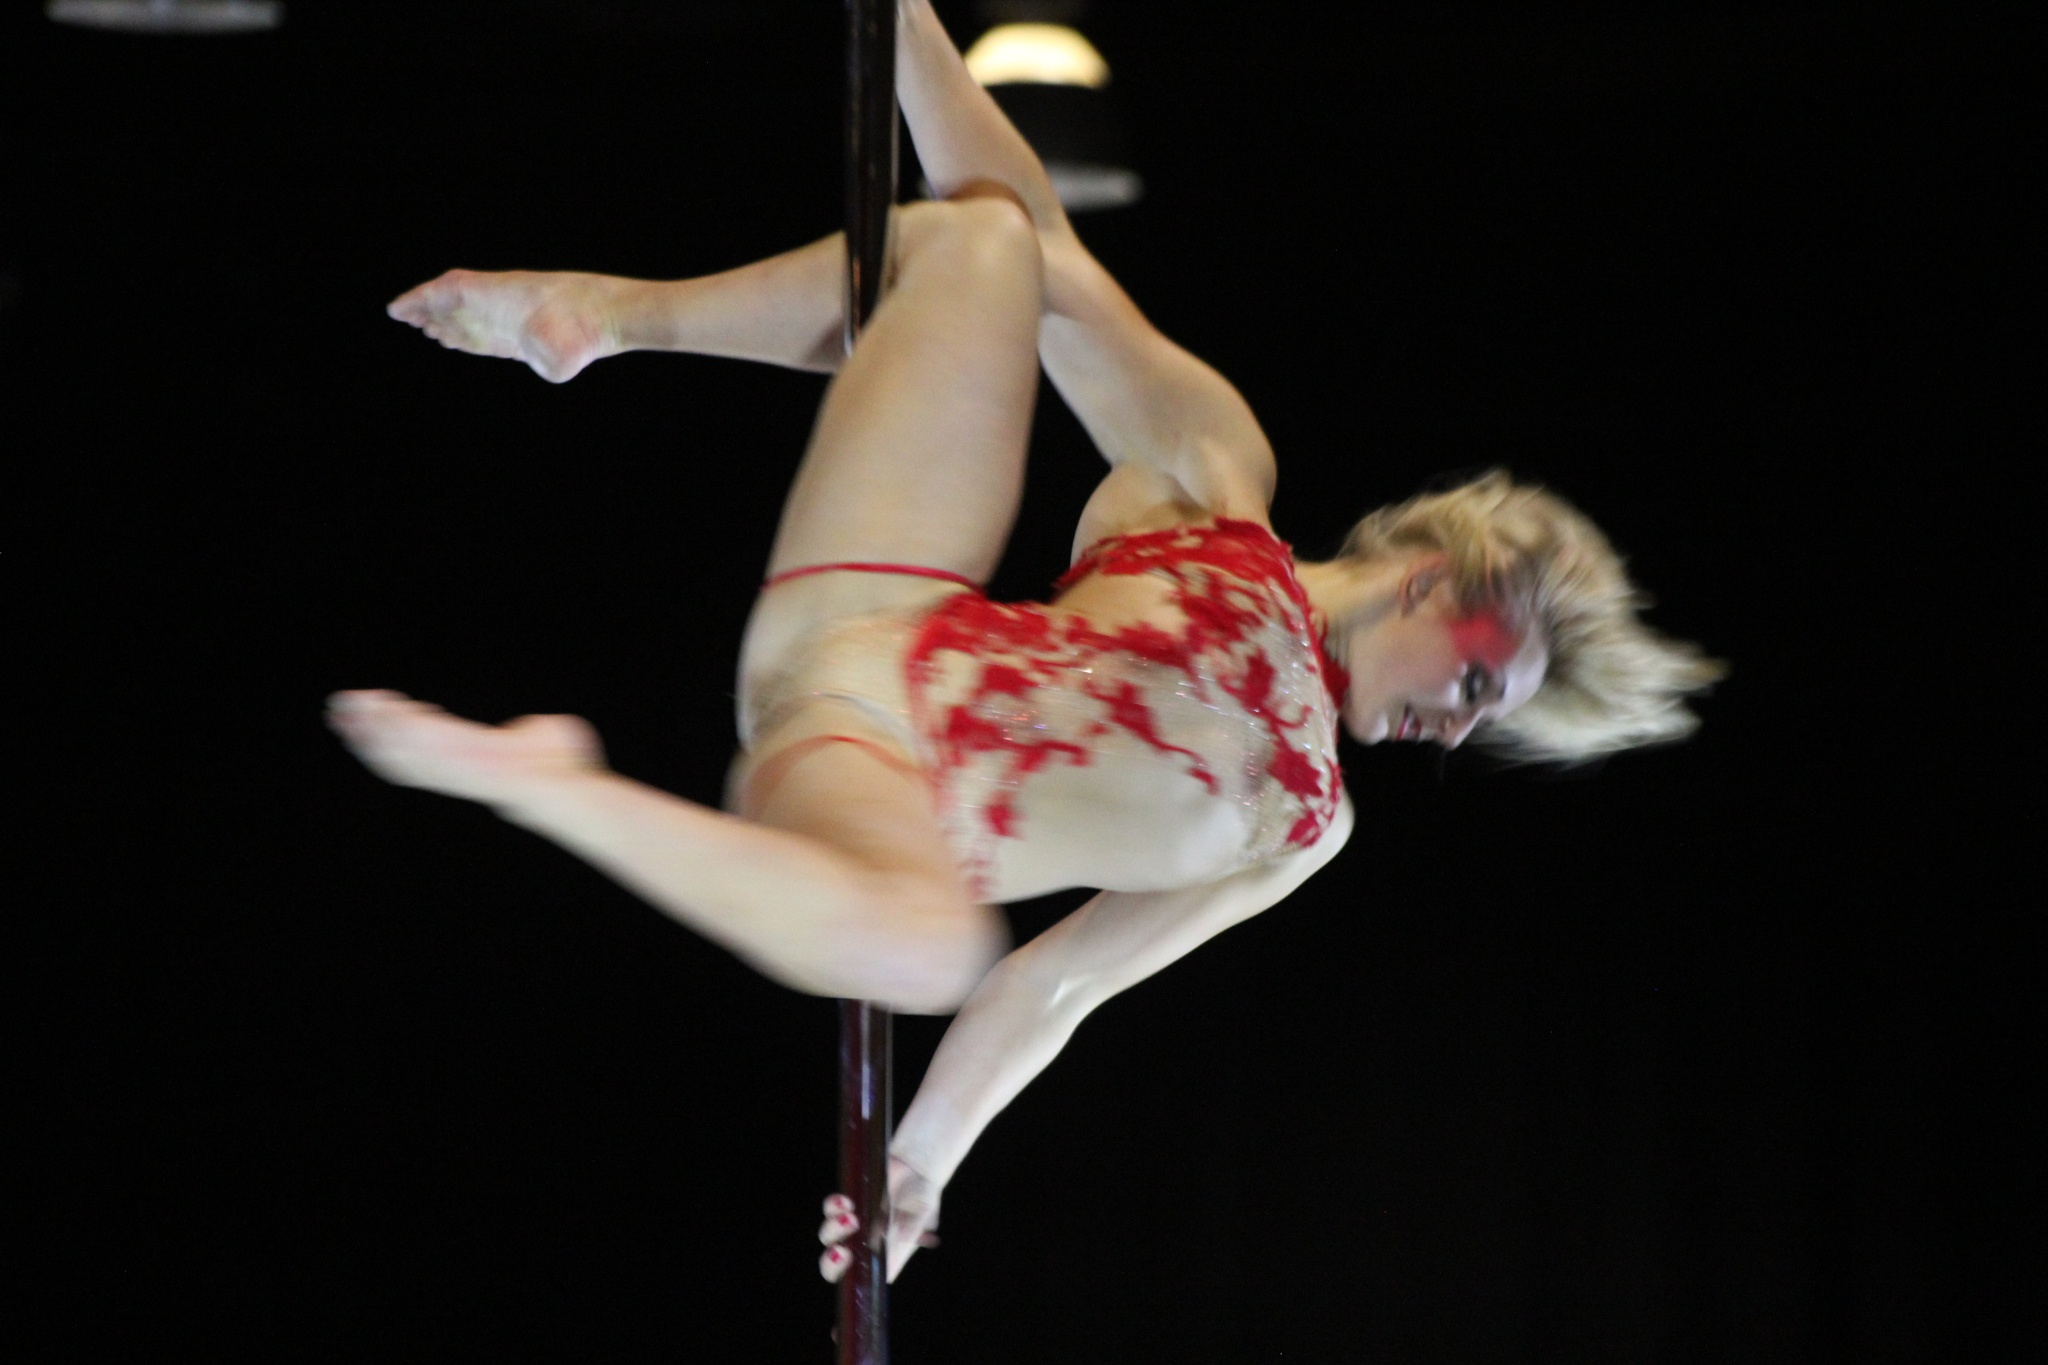 Pole dancer by gary.macnicol